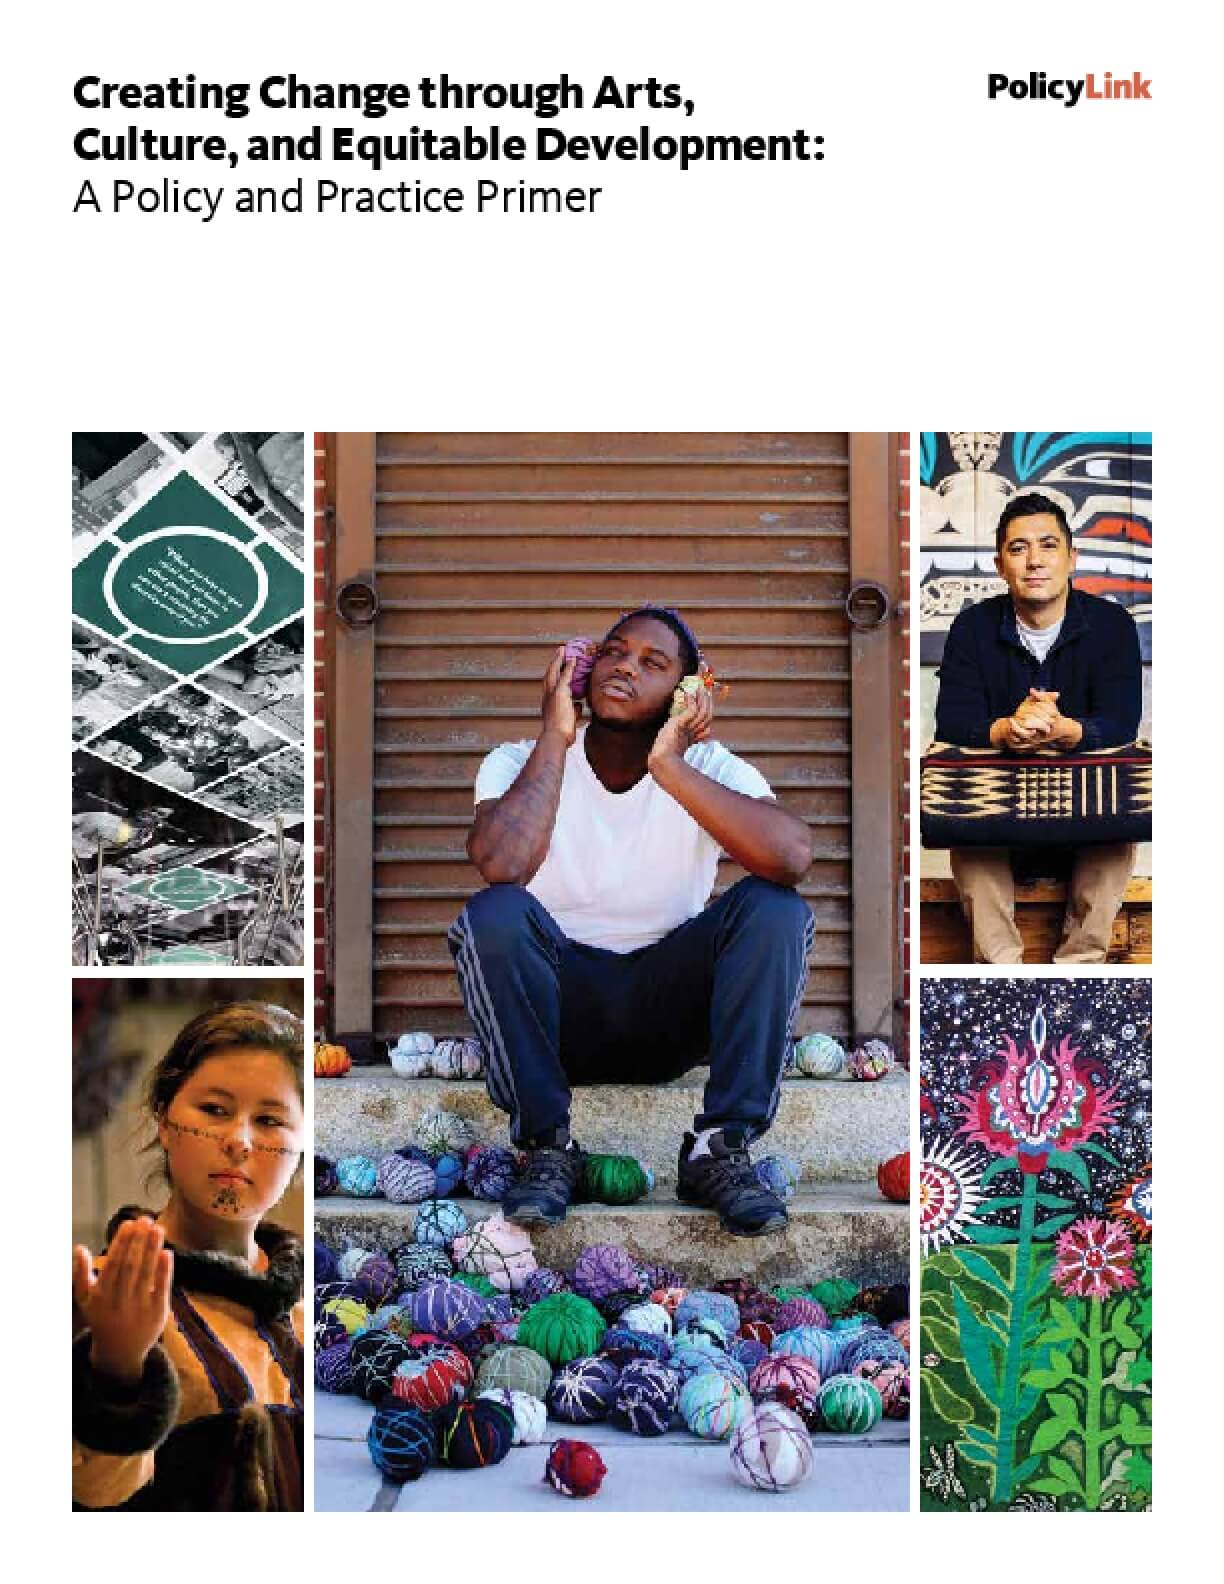 Creating Change through Arts, Culture, and Equitable Development: A Policy and Practice Primer